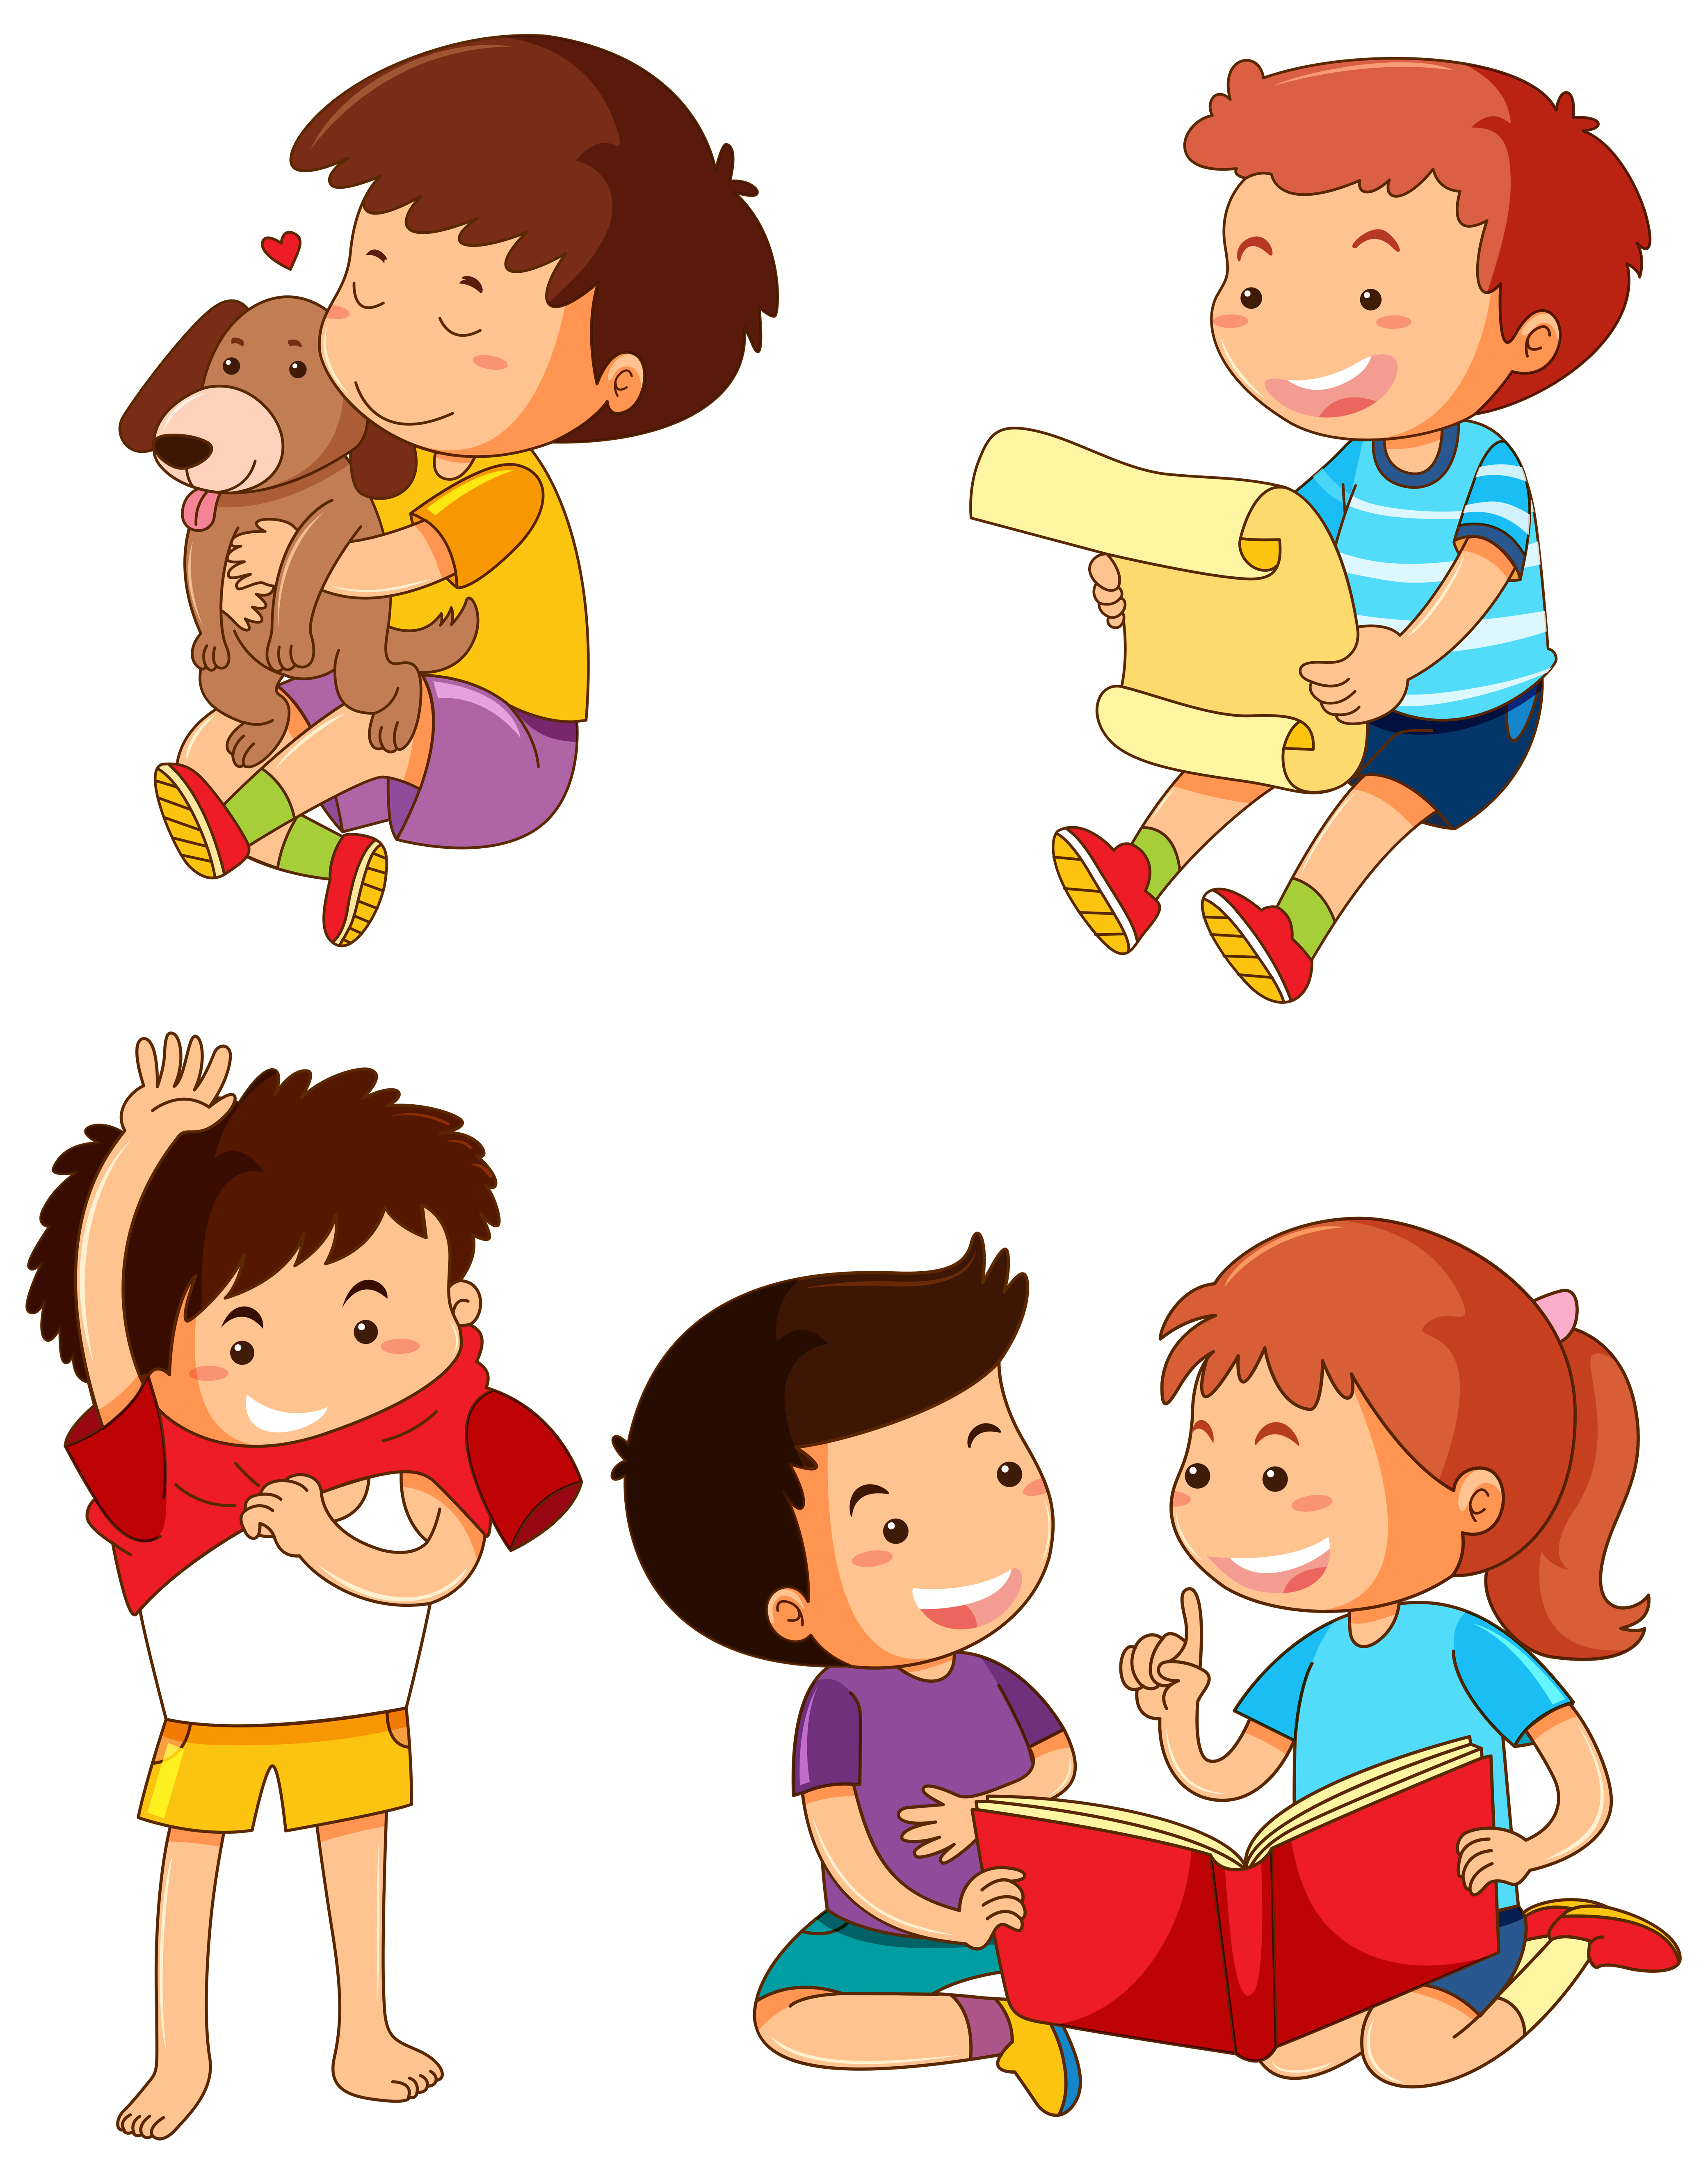 349a131400 Boys in different actions - Download Free Vector Art